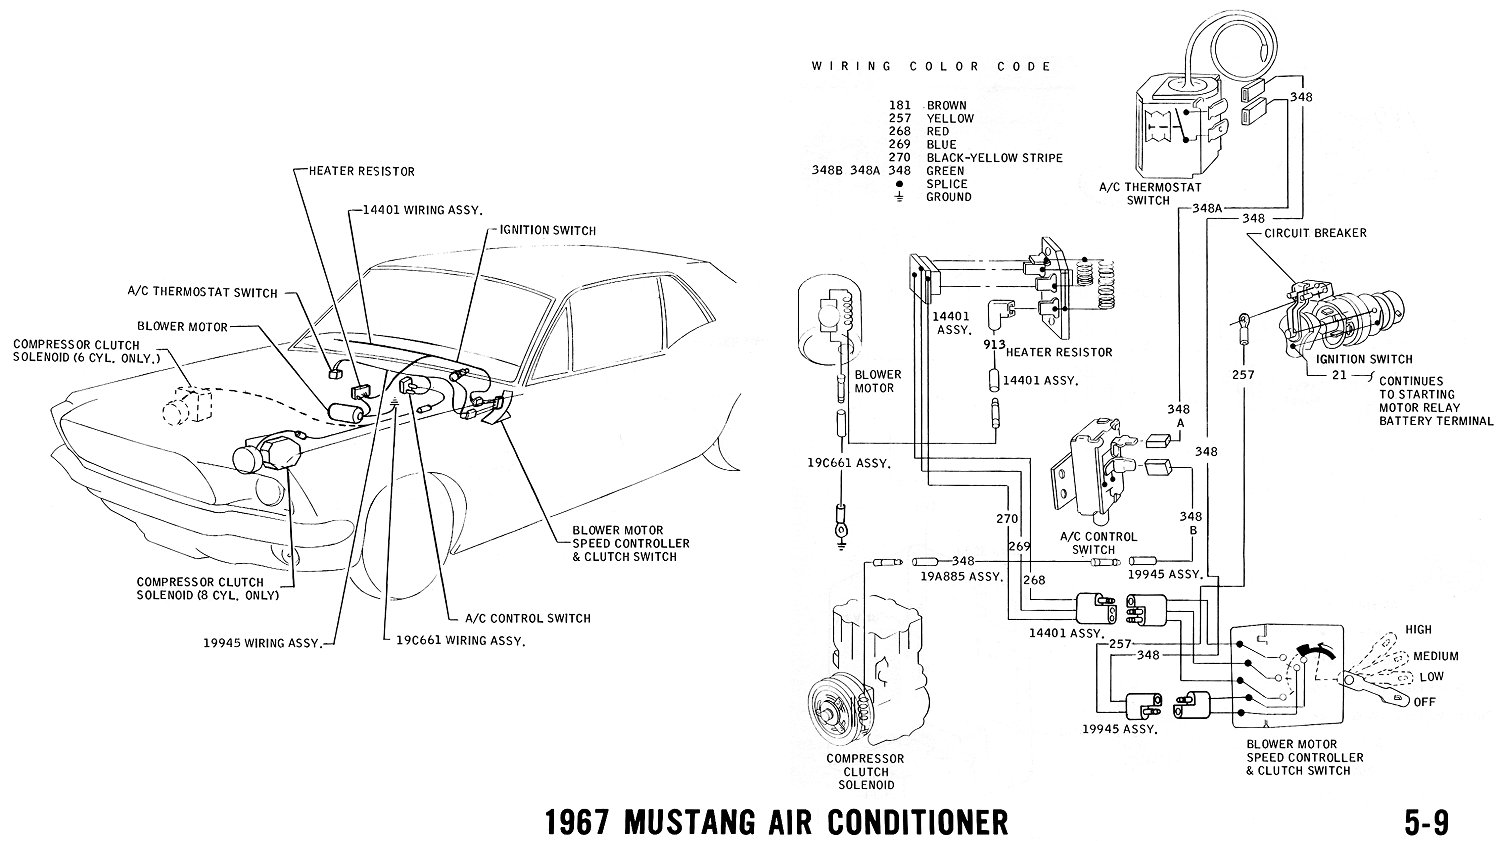 1967 ford mustang engine diagram data wiring diagram update2012 mustang engine diagram data wiring diagram update 1970 dodge challenger engine diagram 1967 ford mustang engine diagram